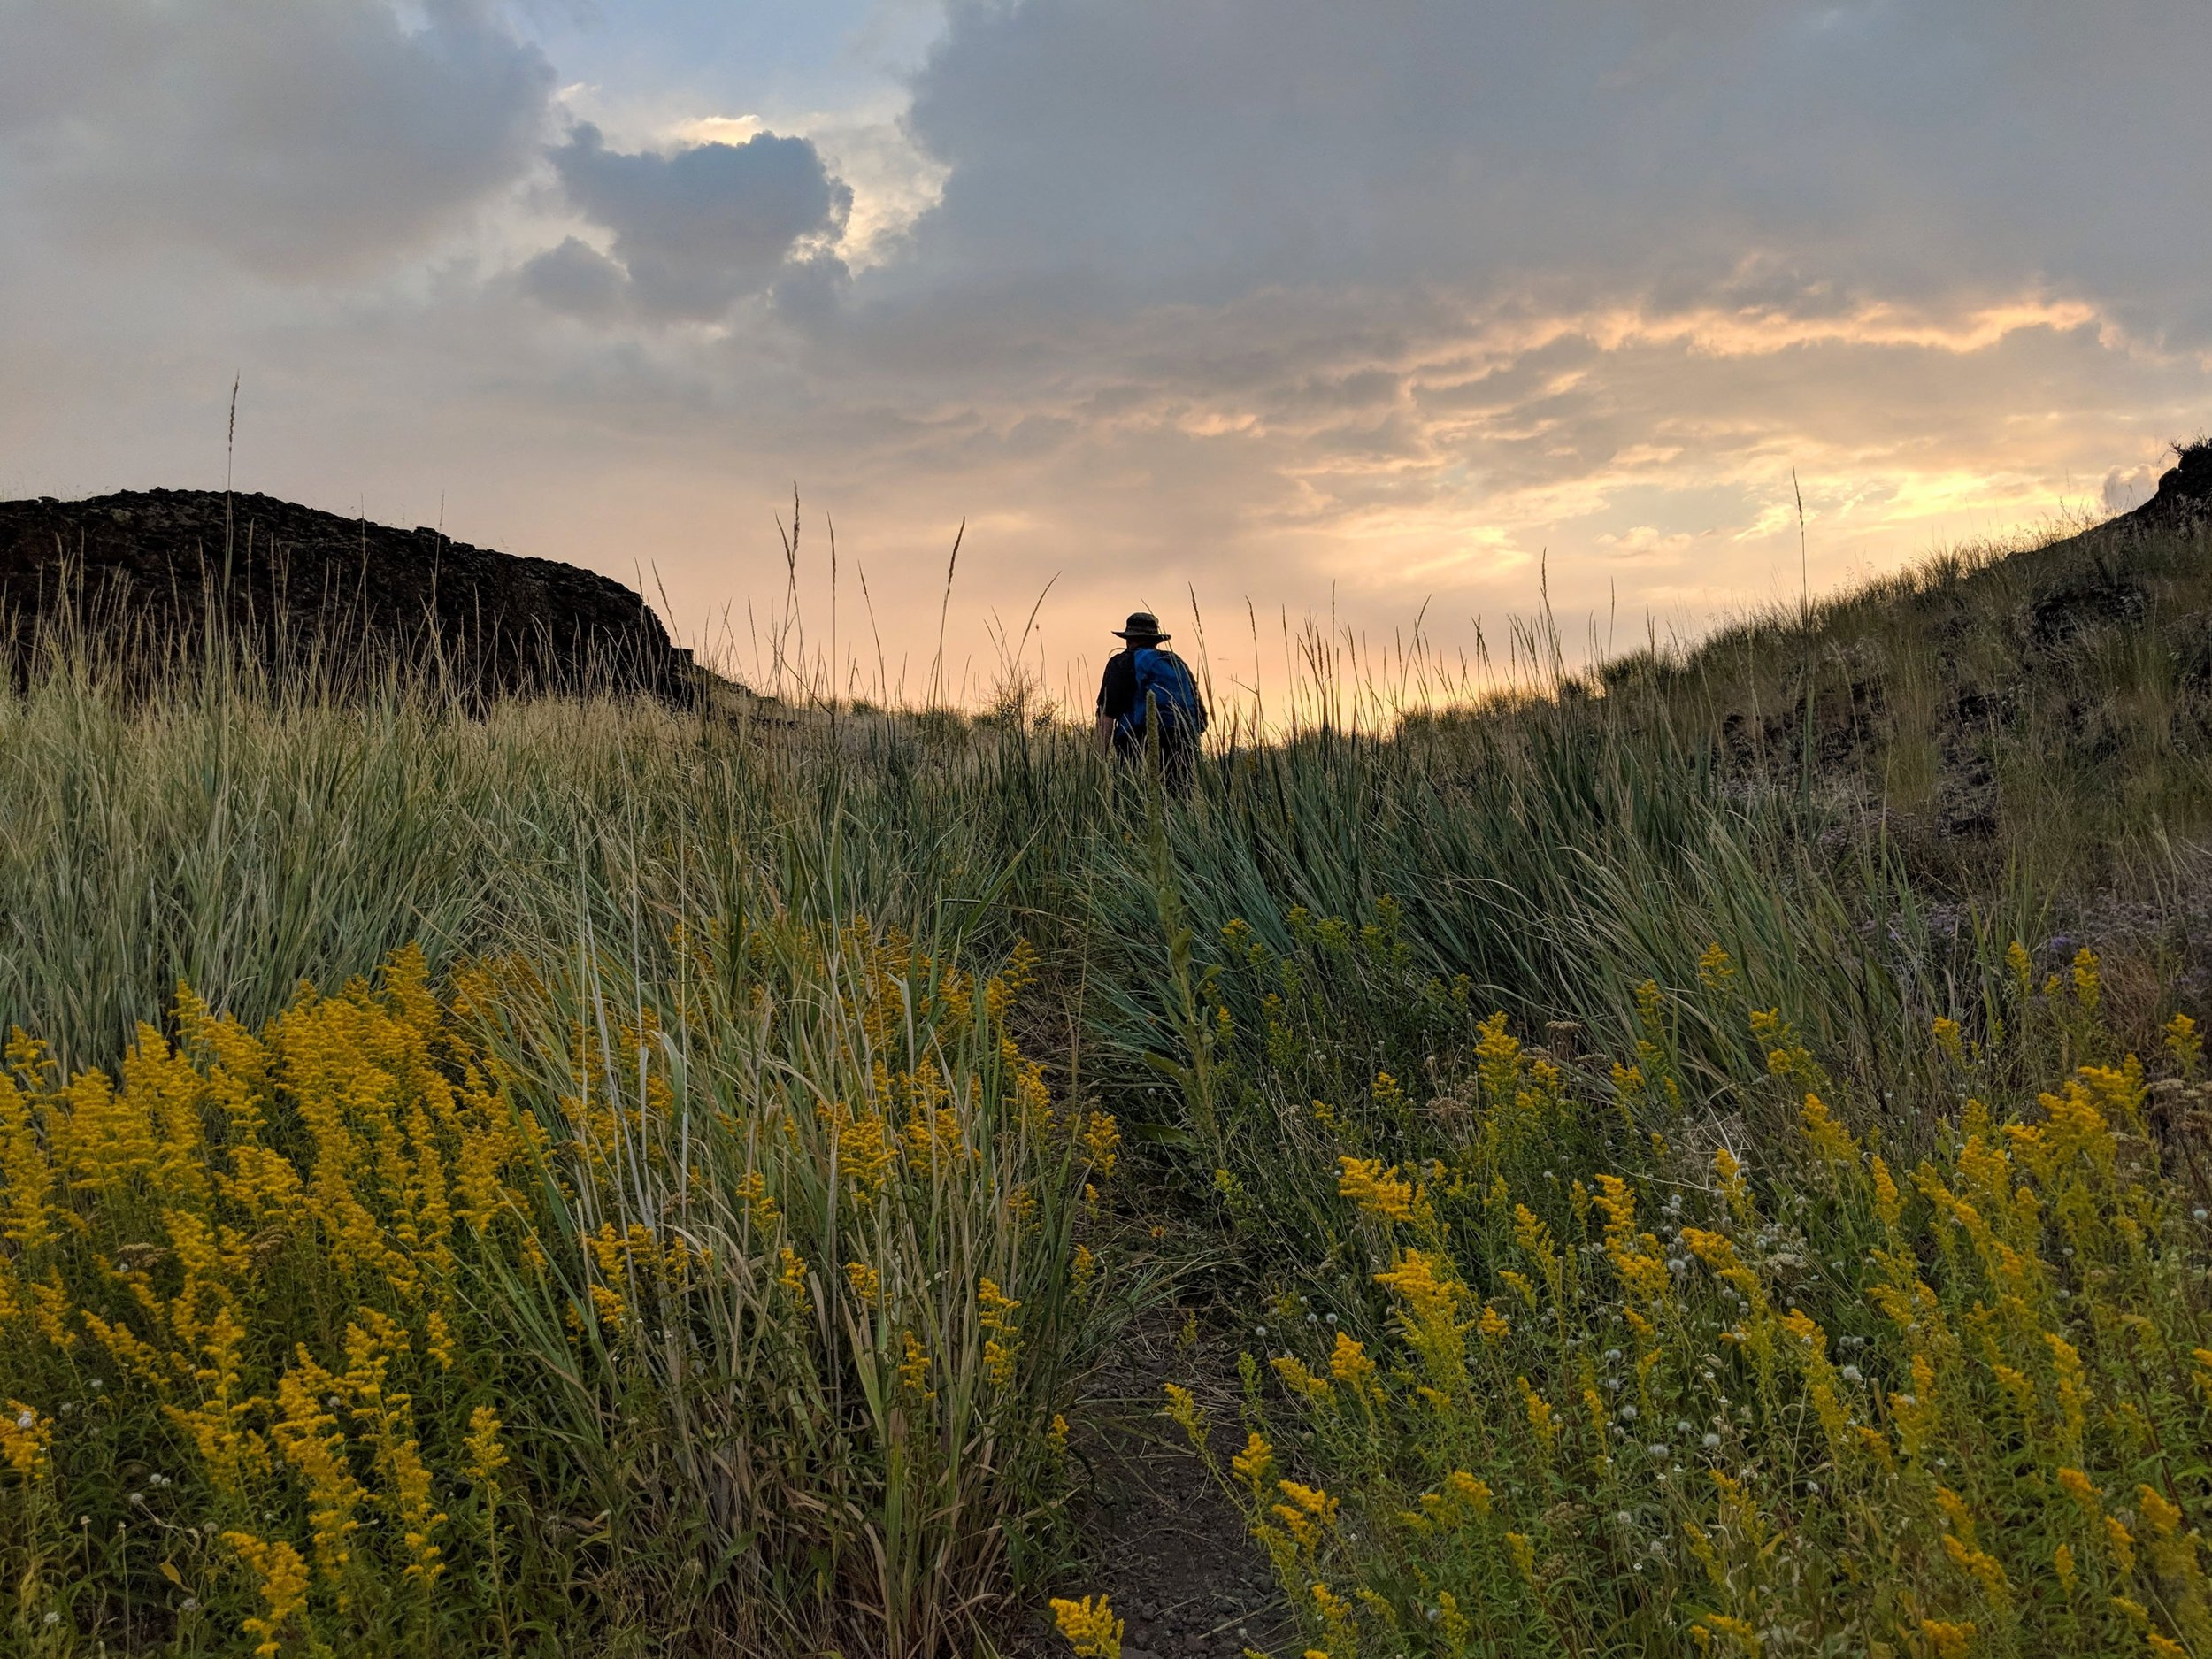 Hiking through flowers and grasses